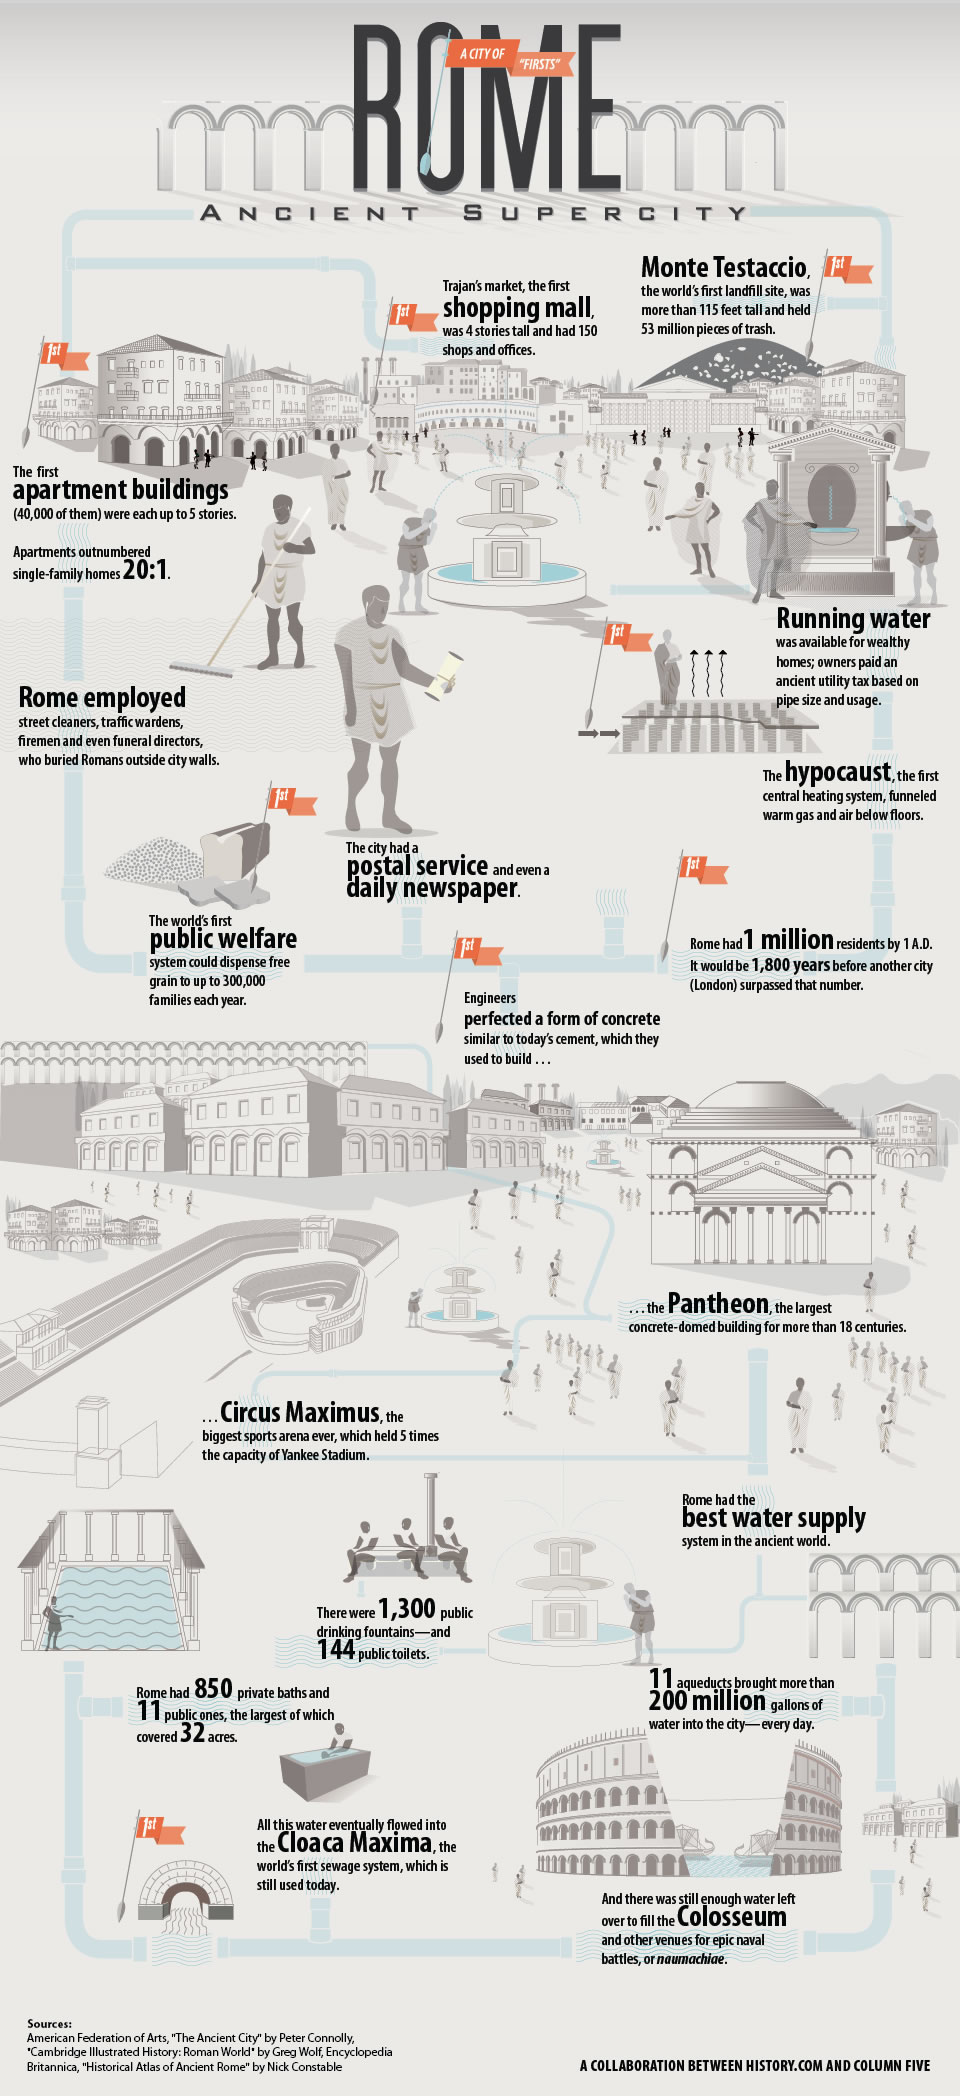 ankind the story of all of us rome infographic